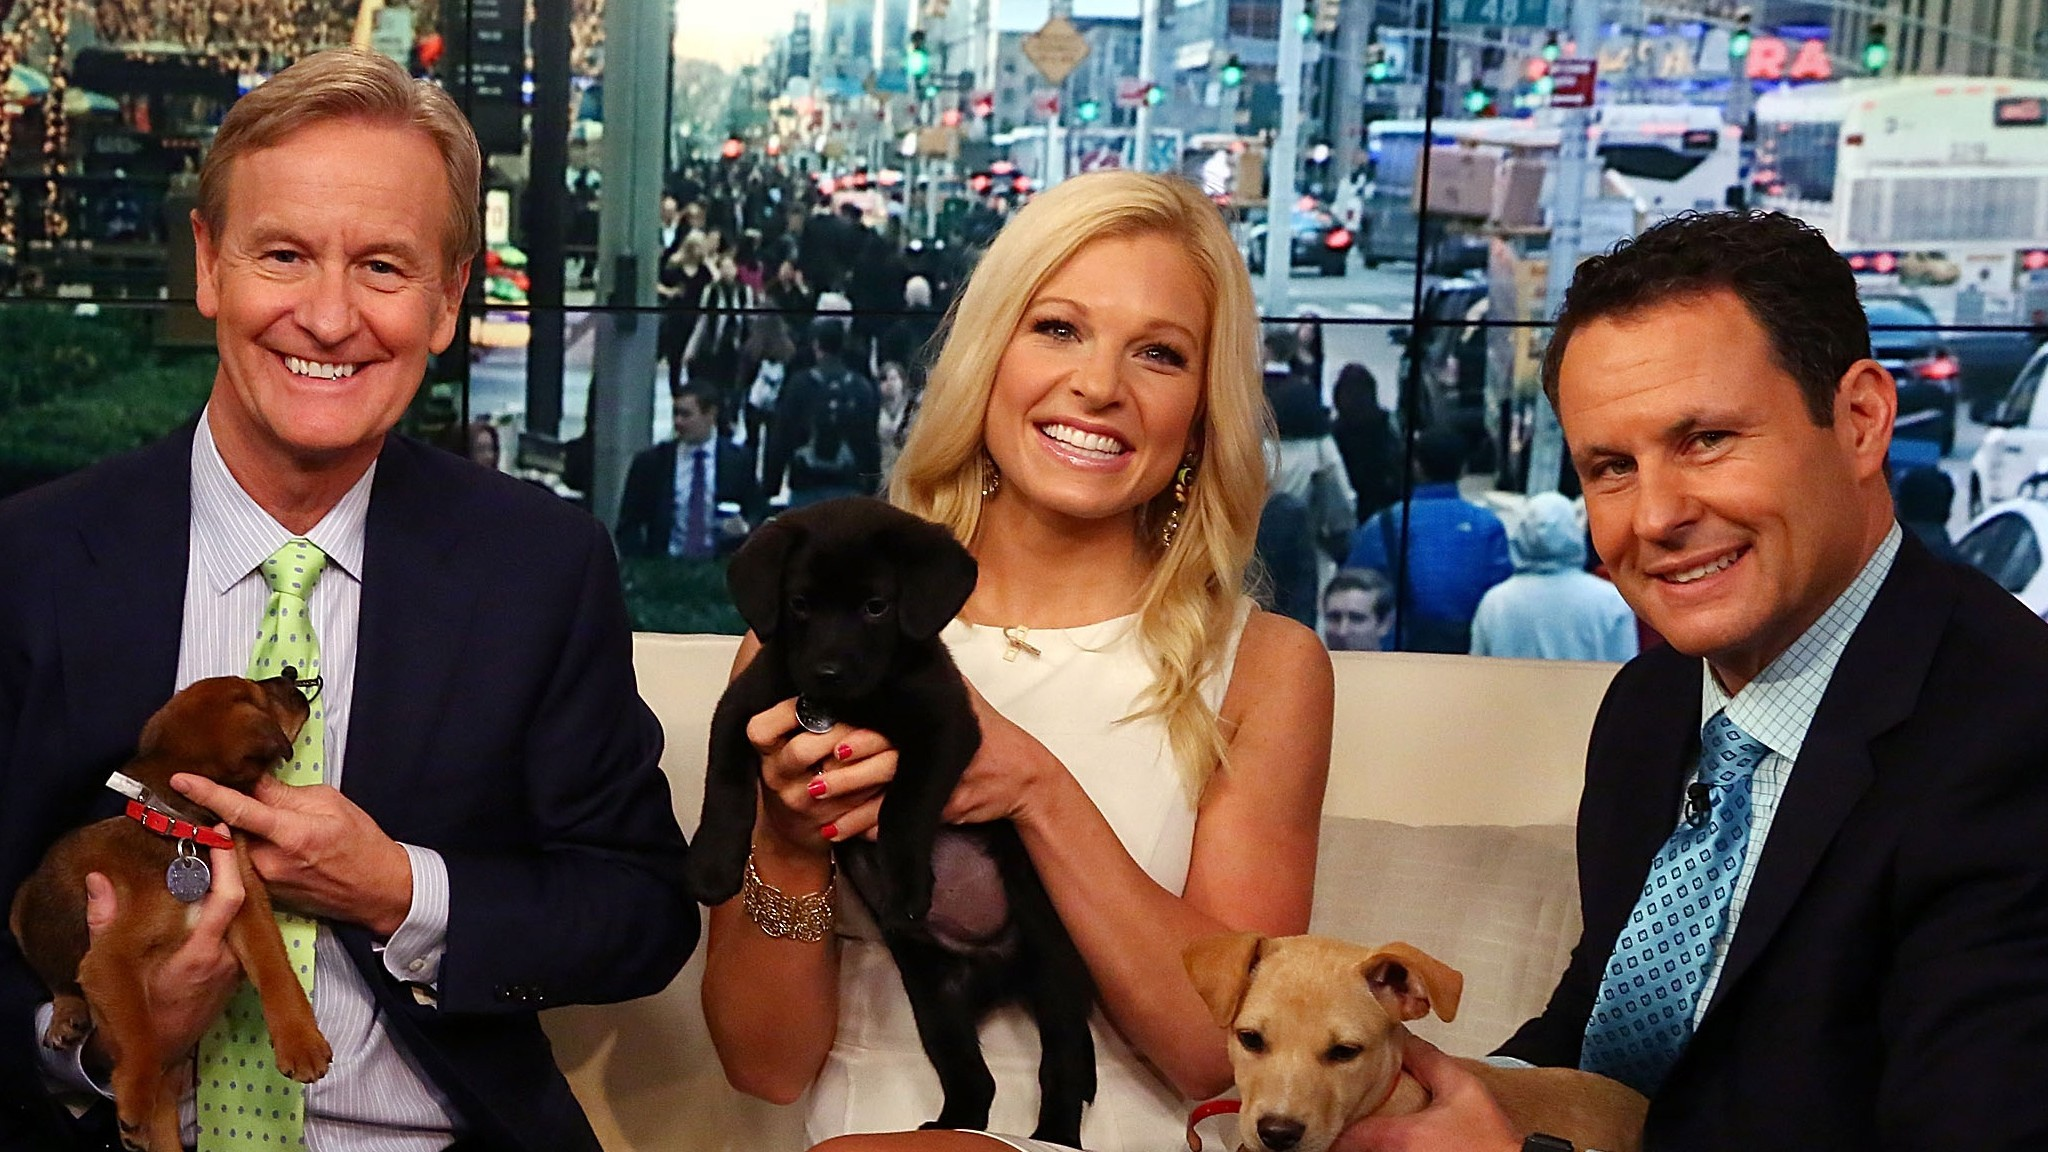 I Watched 15 Hours of 'Fox & Friends' and I Want to Die